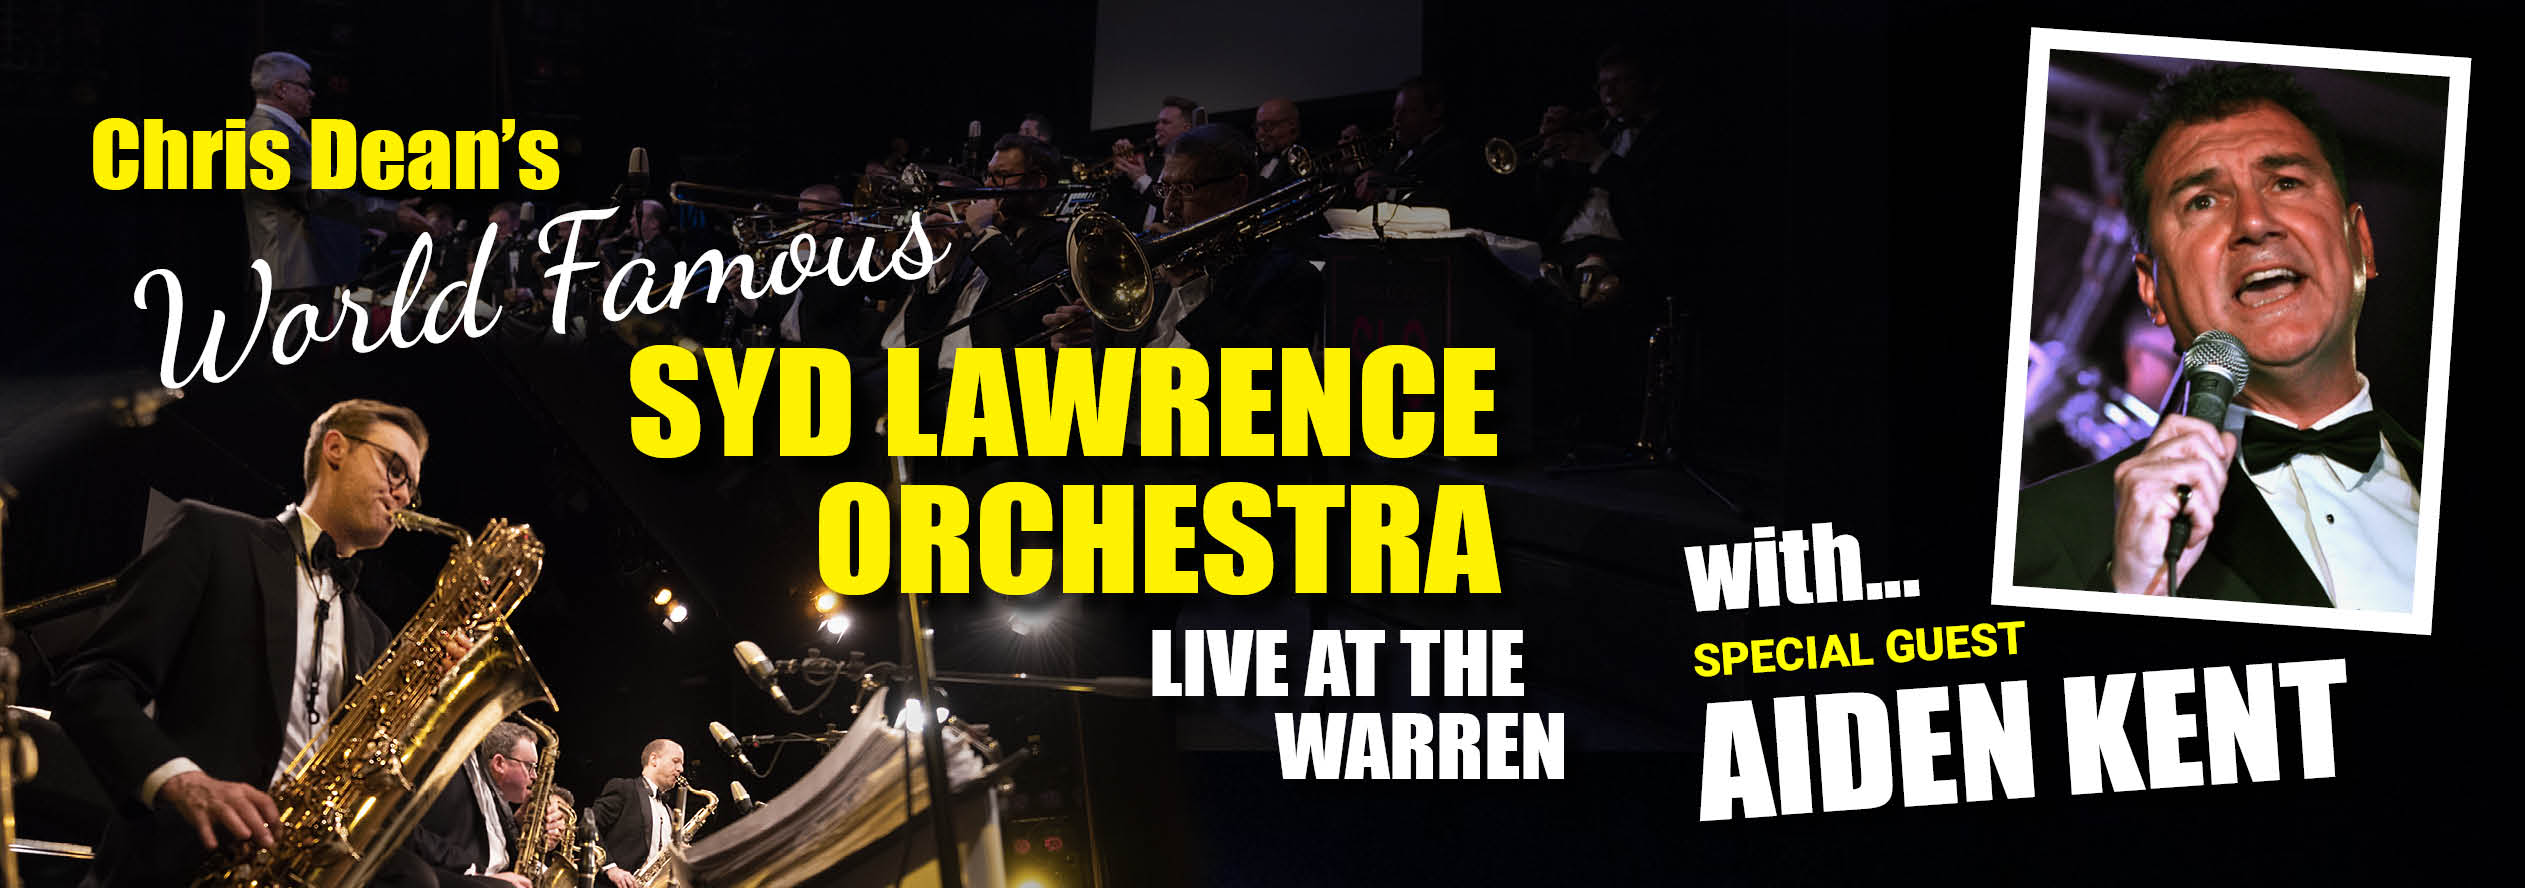 Chris Dean and the Syd Lawrence Orchestra with Aiden Kent